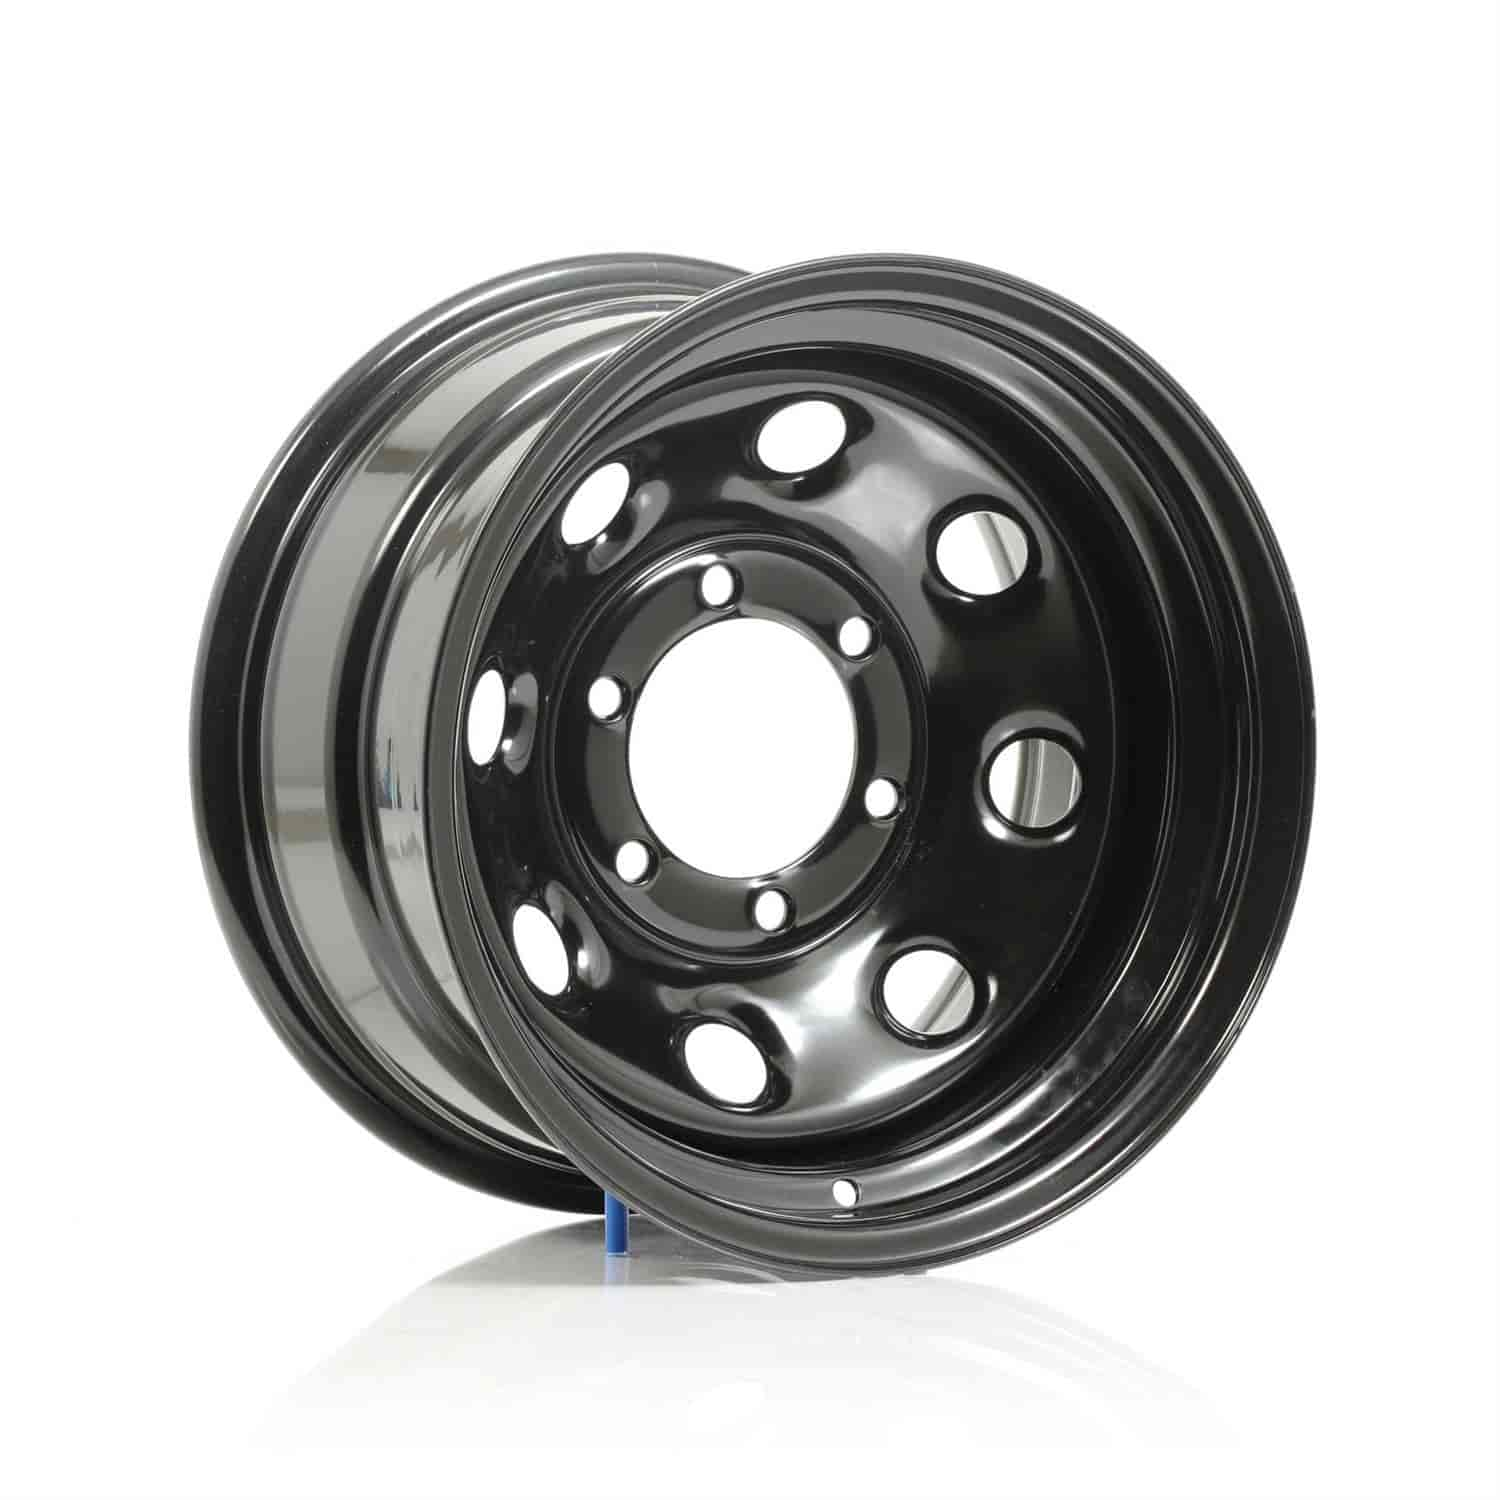 Cragar #3975860 - Cragar Black Soft 8 Wheels